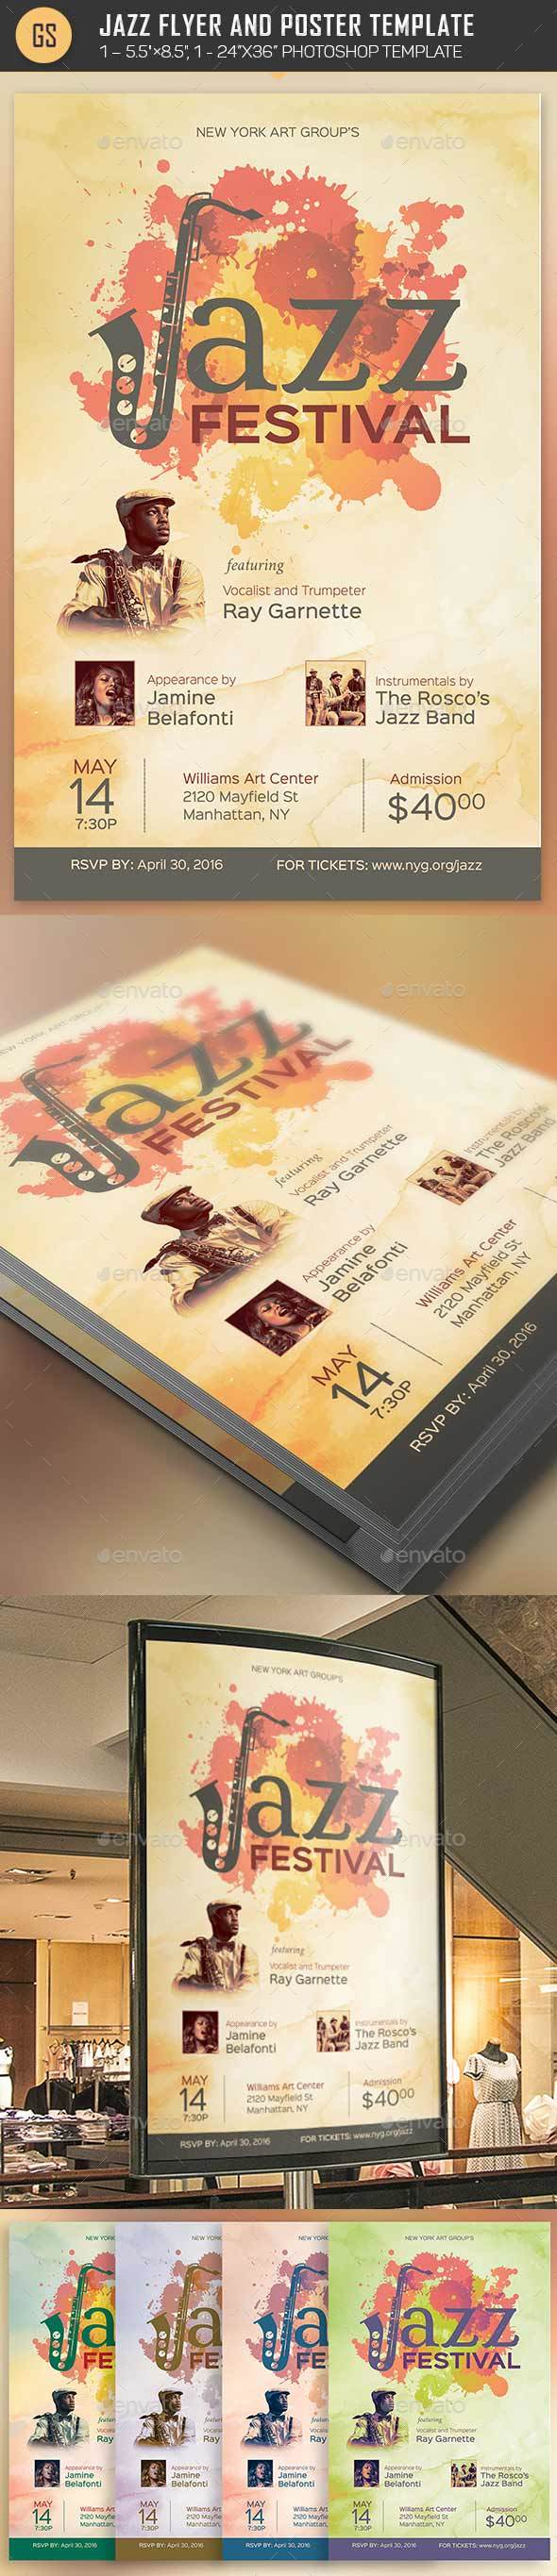 Jazz Flyer Poster Template - Events Flyers